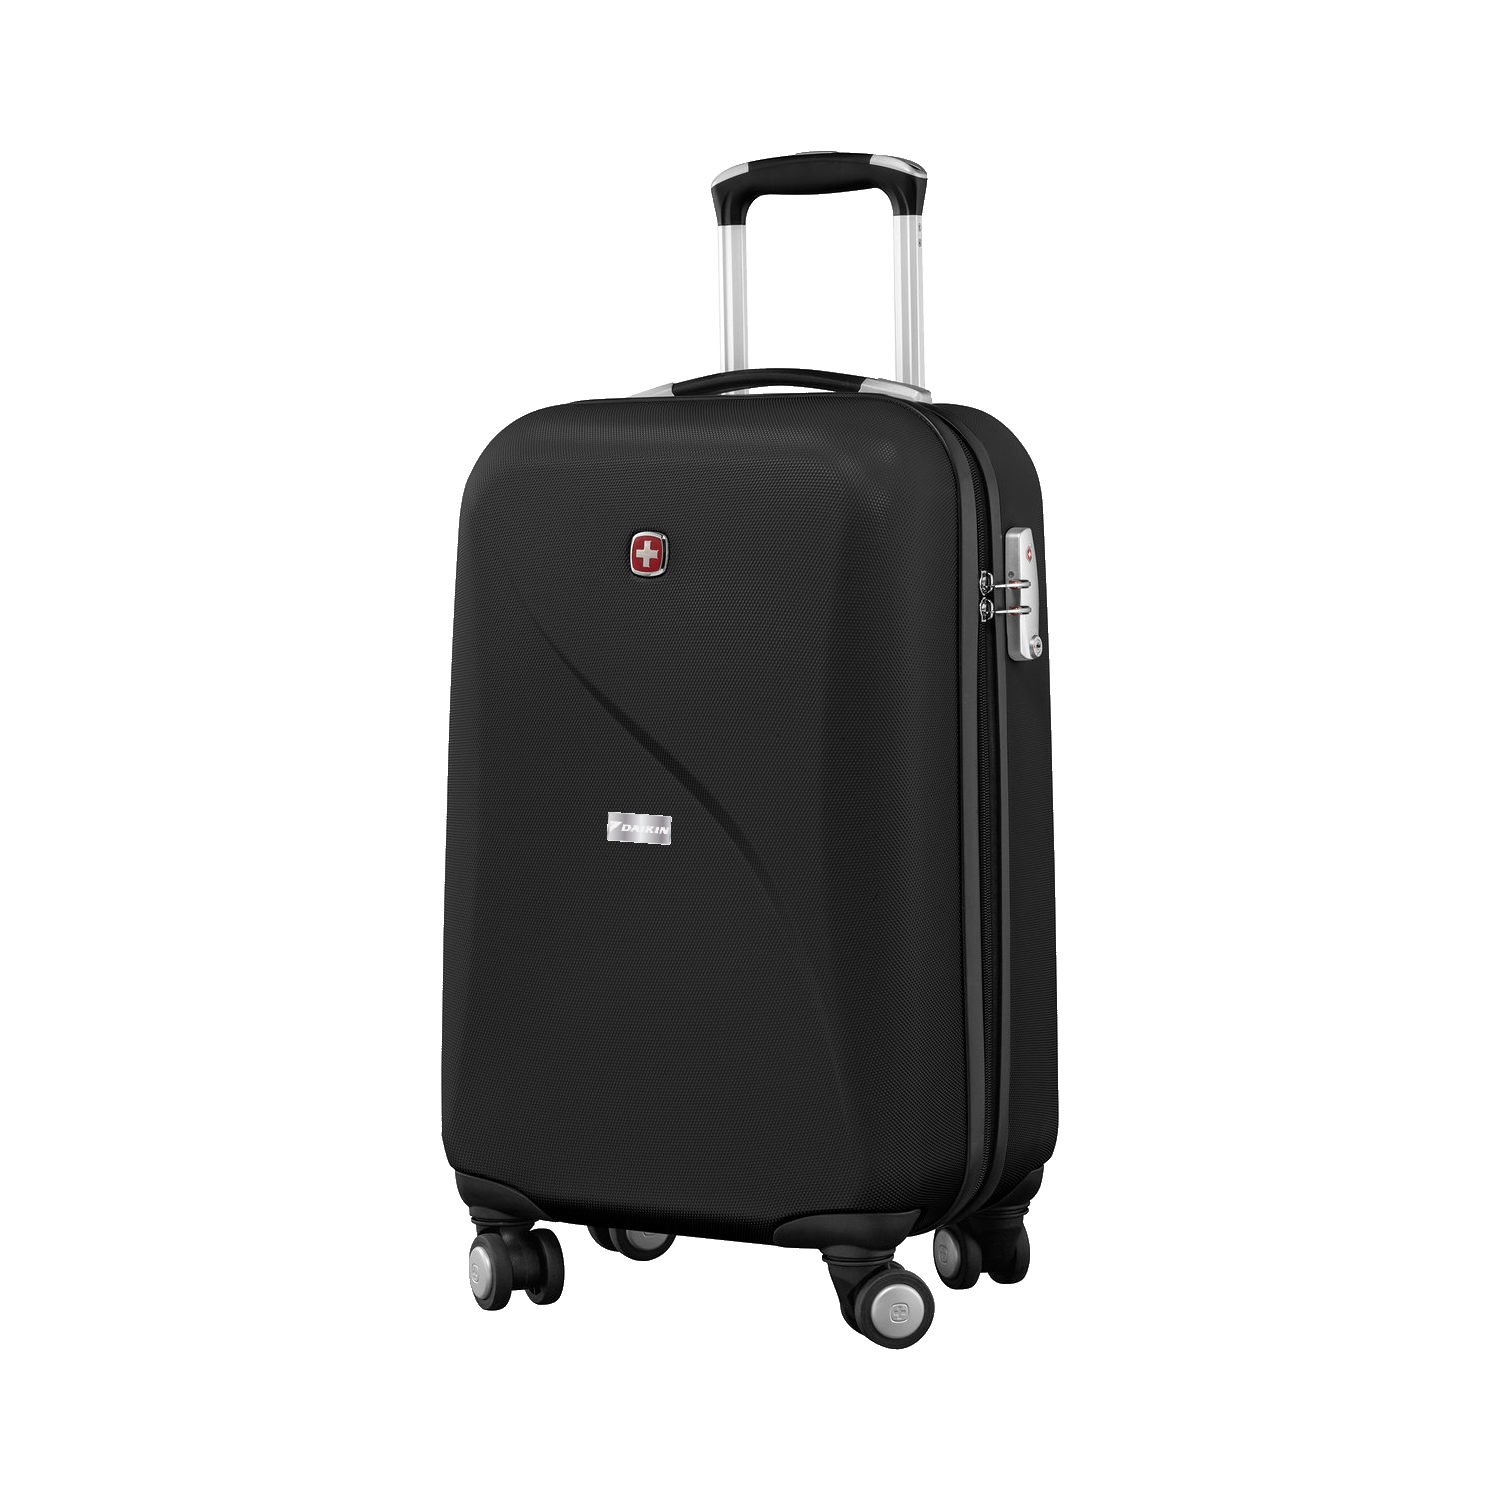 D1946 Rove Carry-on Spinner Luggage